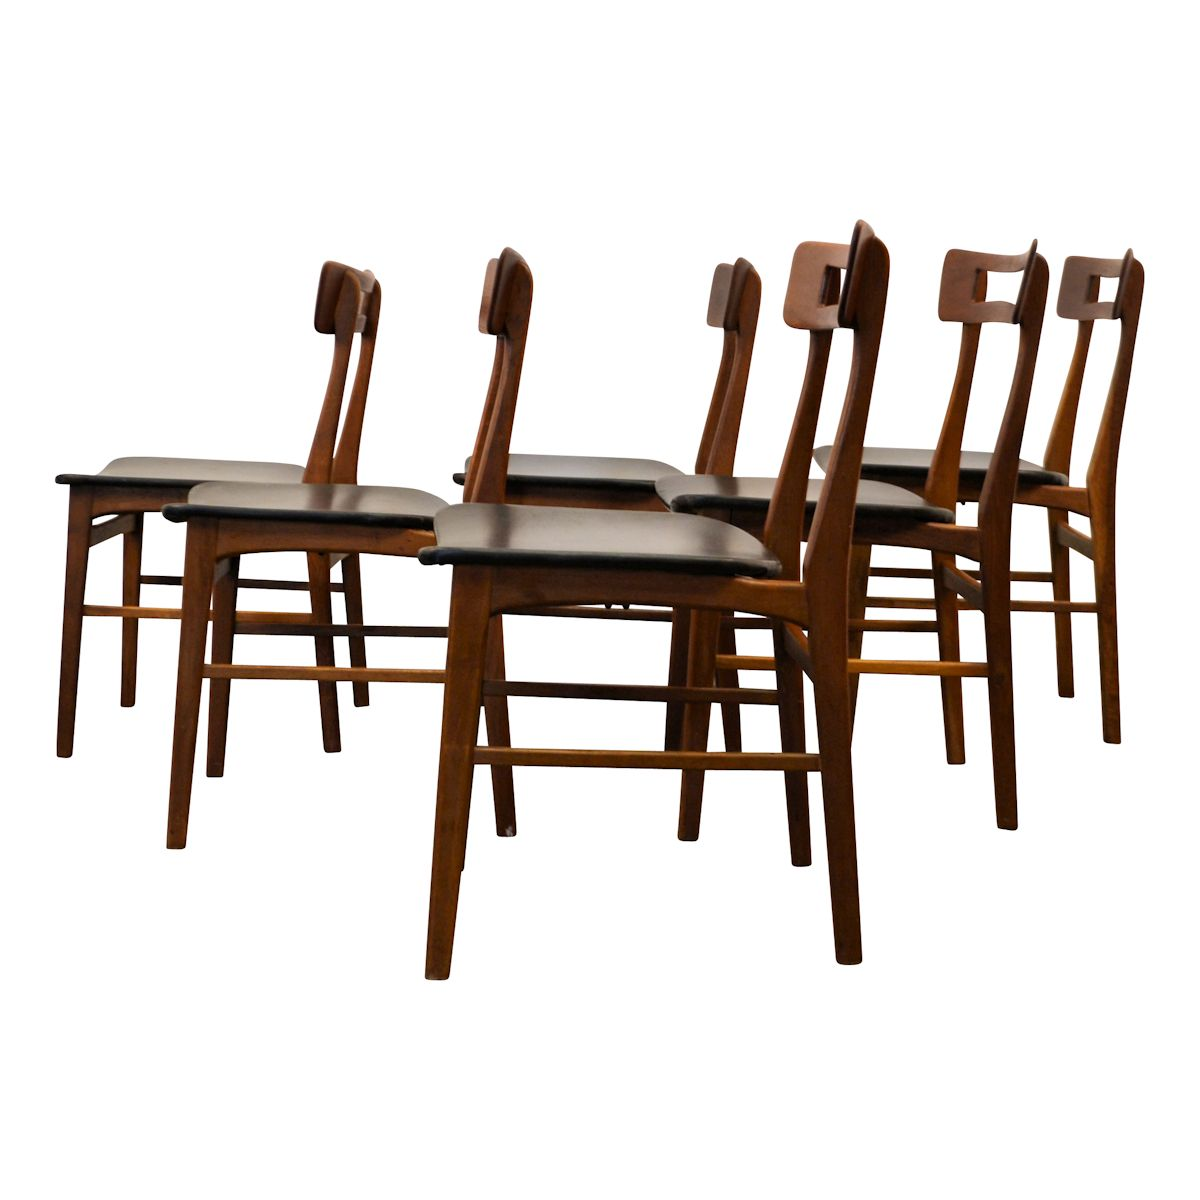 Vintage Teak Danish Modern Dining Chairs - side